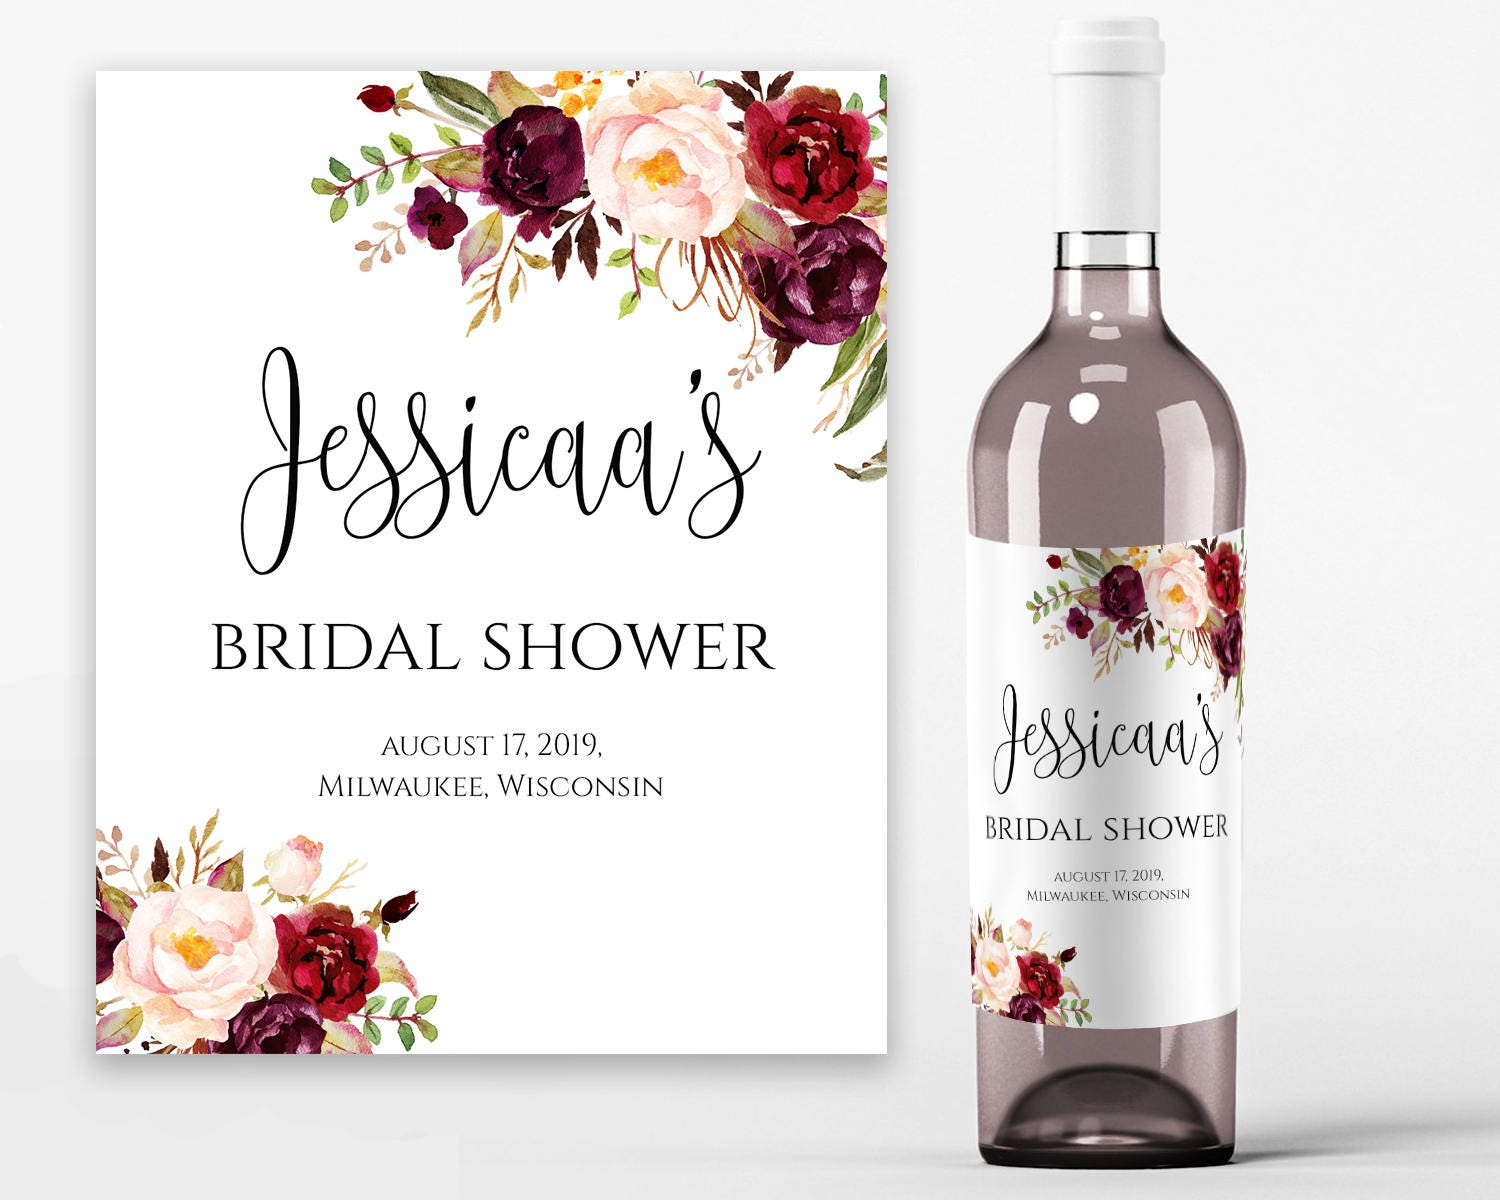 image relating to Printable Wine Labels referred to as Bridal Shower Wine Labels Bridal Wine Printable Wine Label Template Wine Bottle Labels Bridal Wine Labels PDF Prompt Obtain Boho Stylish